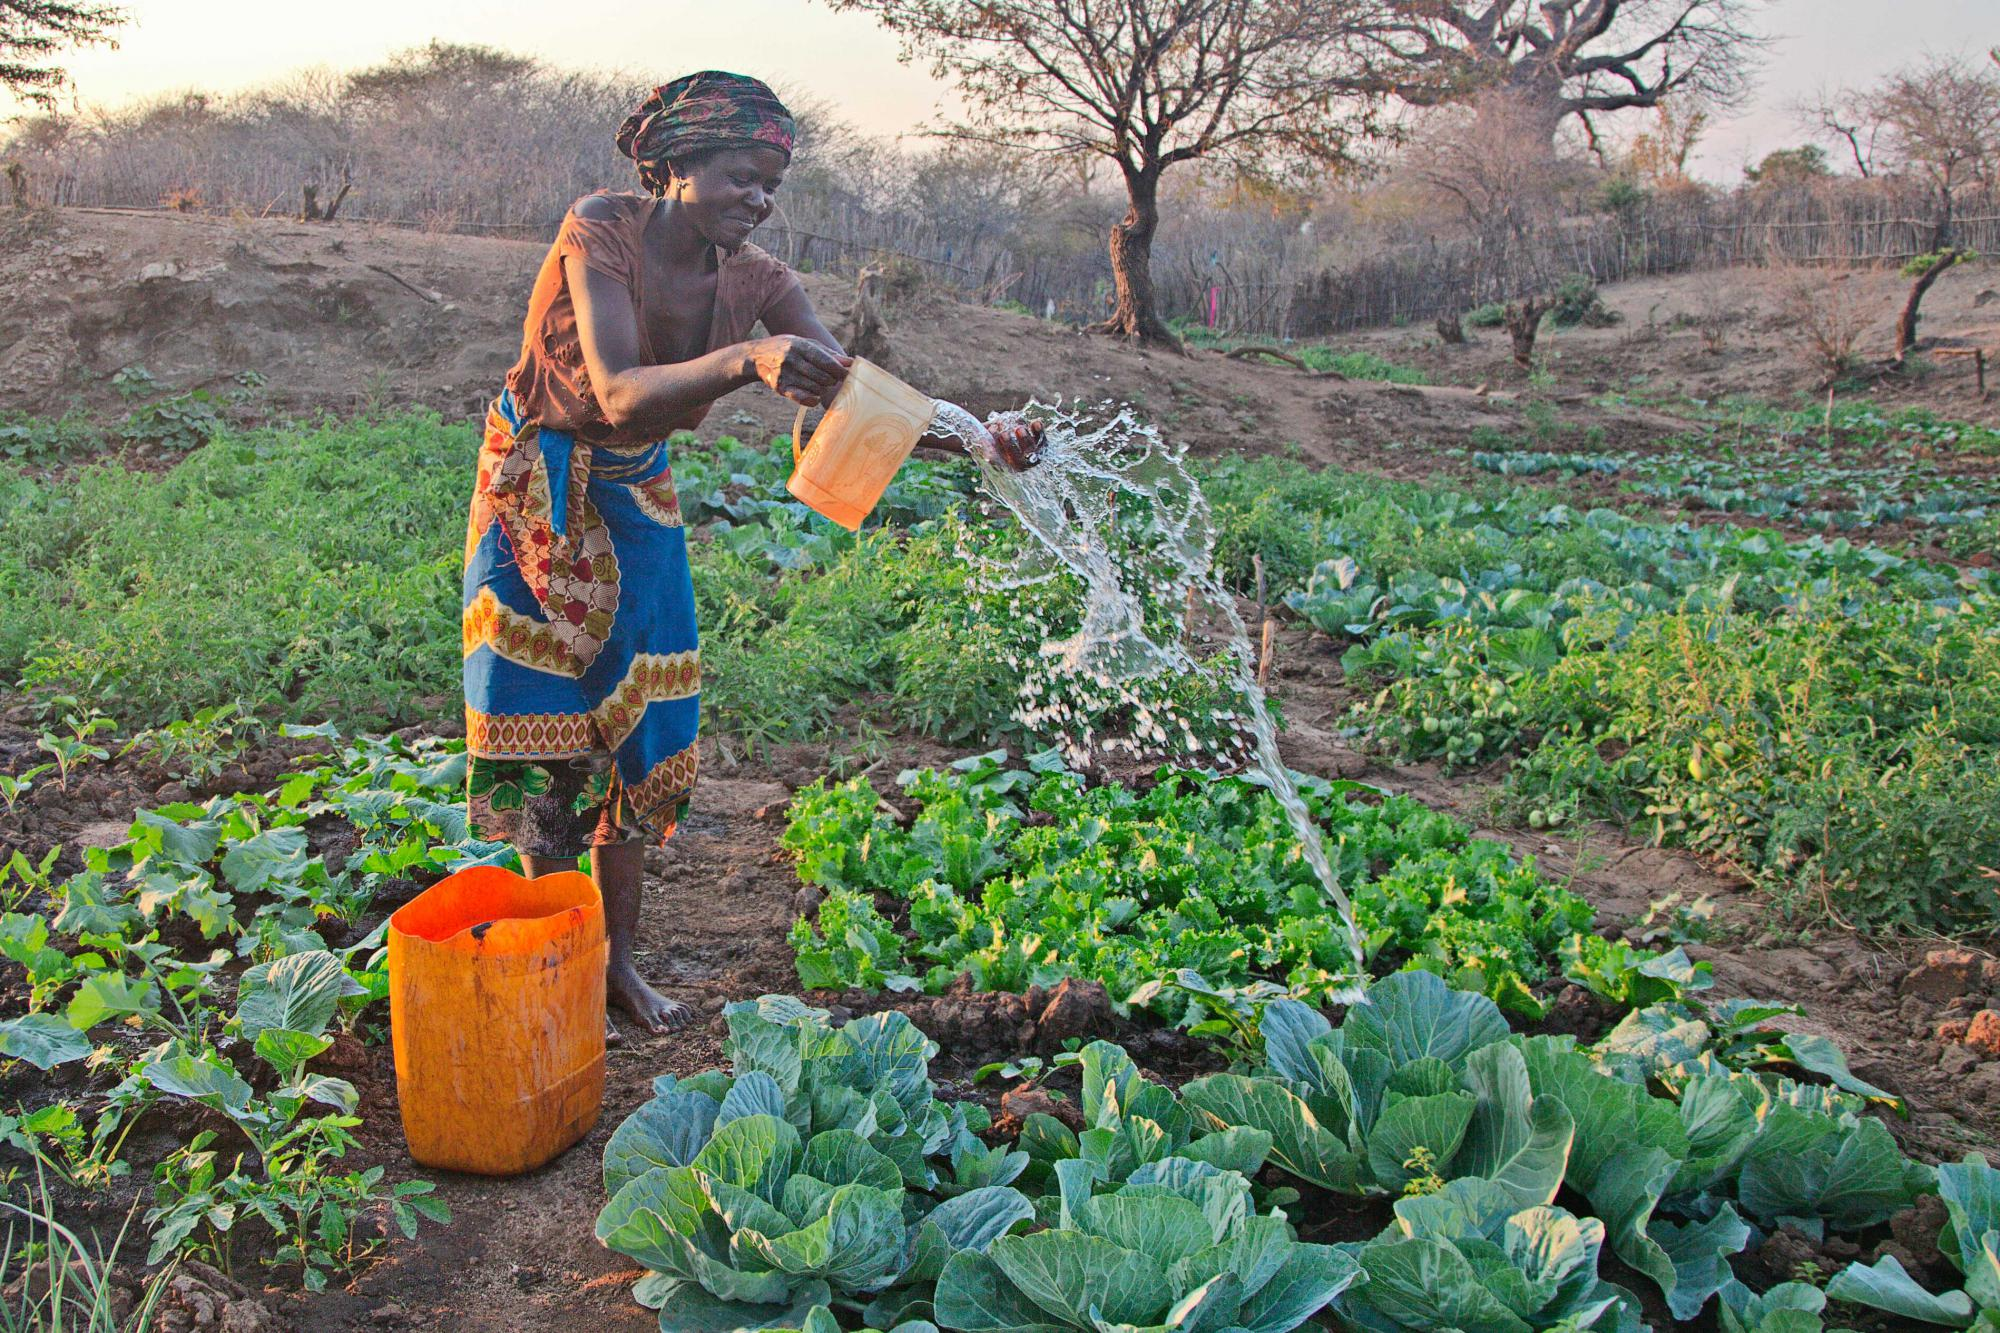 Standing in her field with bucket made from a 5 gallon drun, Lydia Pensar waters her garden by flinging water from a jug.